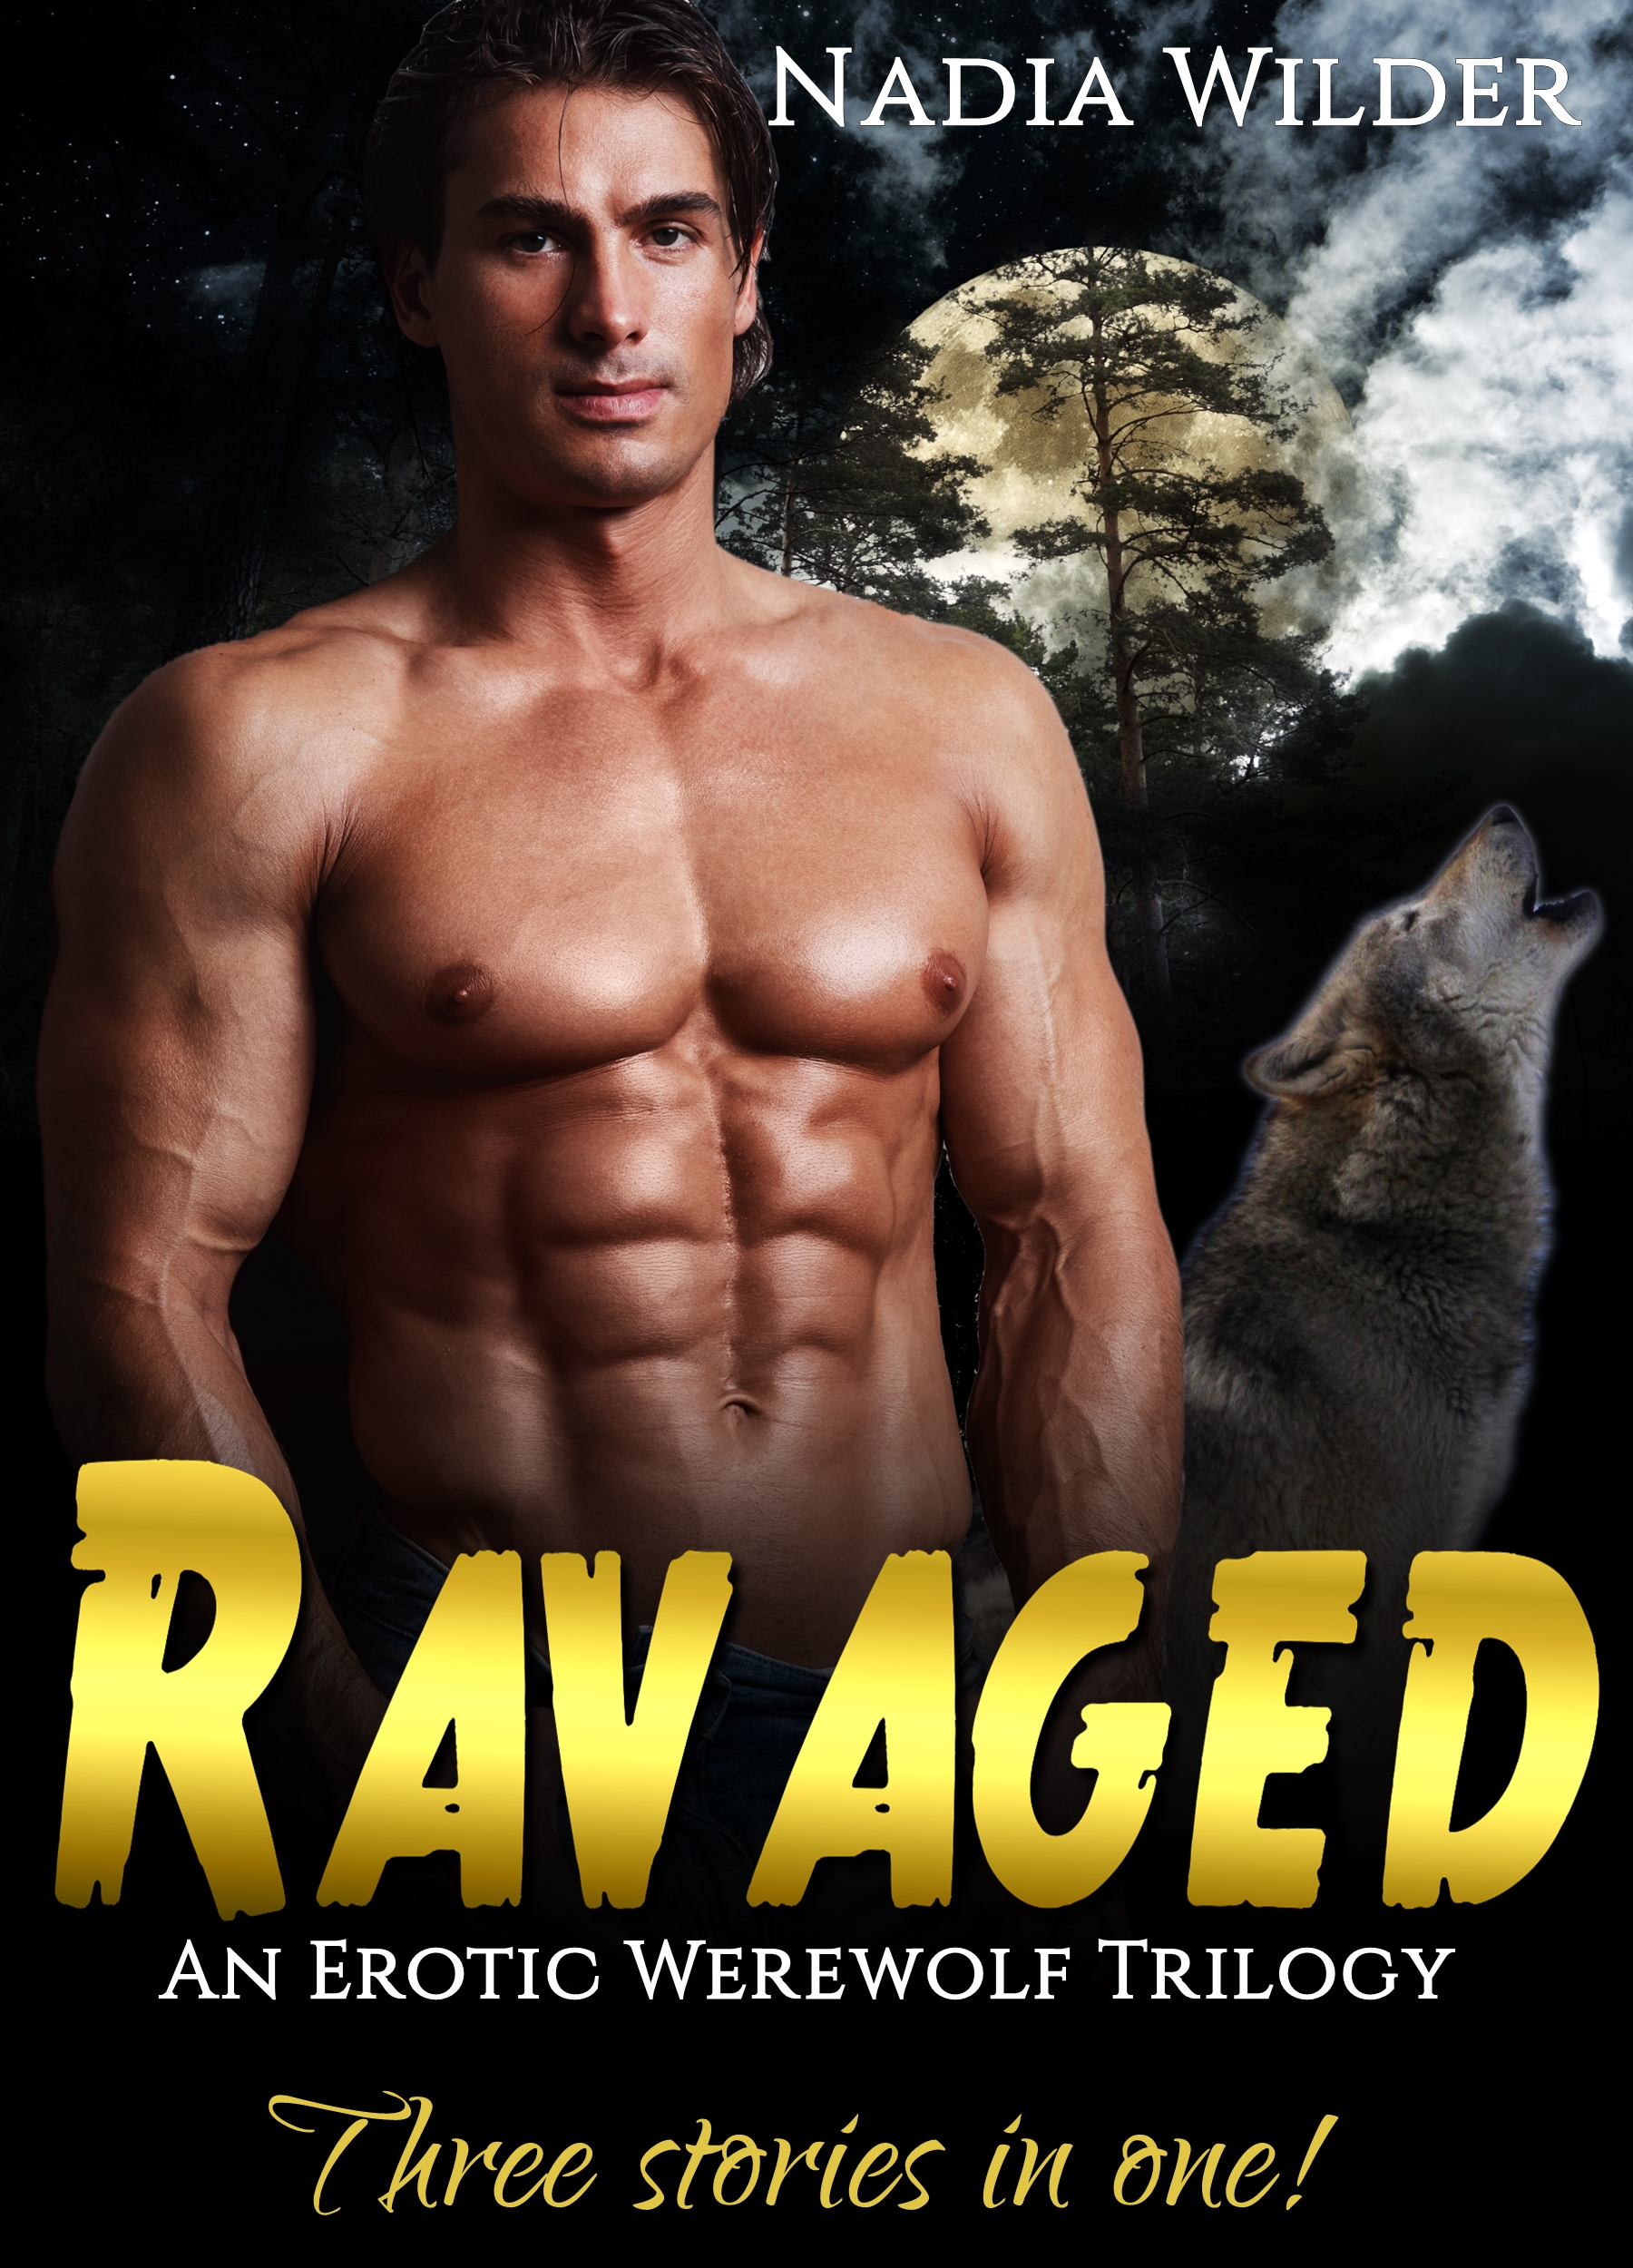 Woman ravaged by werewolf hentay download